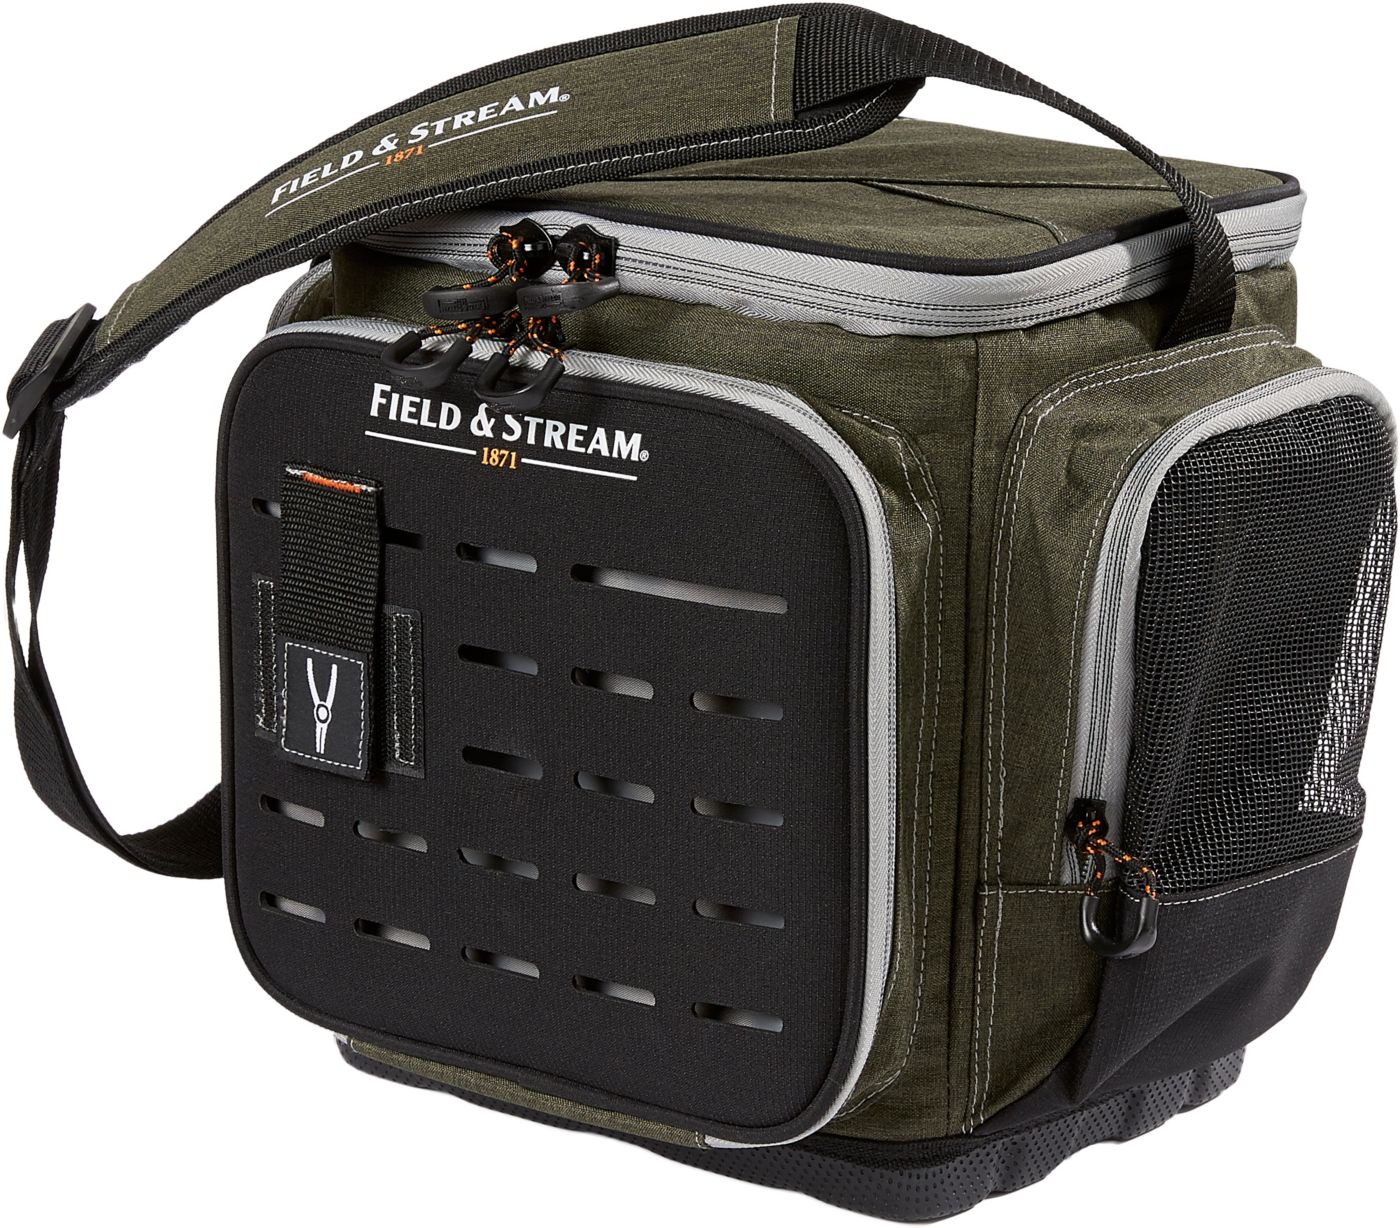 Field & Stream 360 Pro Molle Tackle Bag